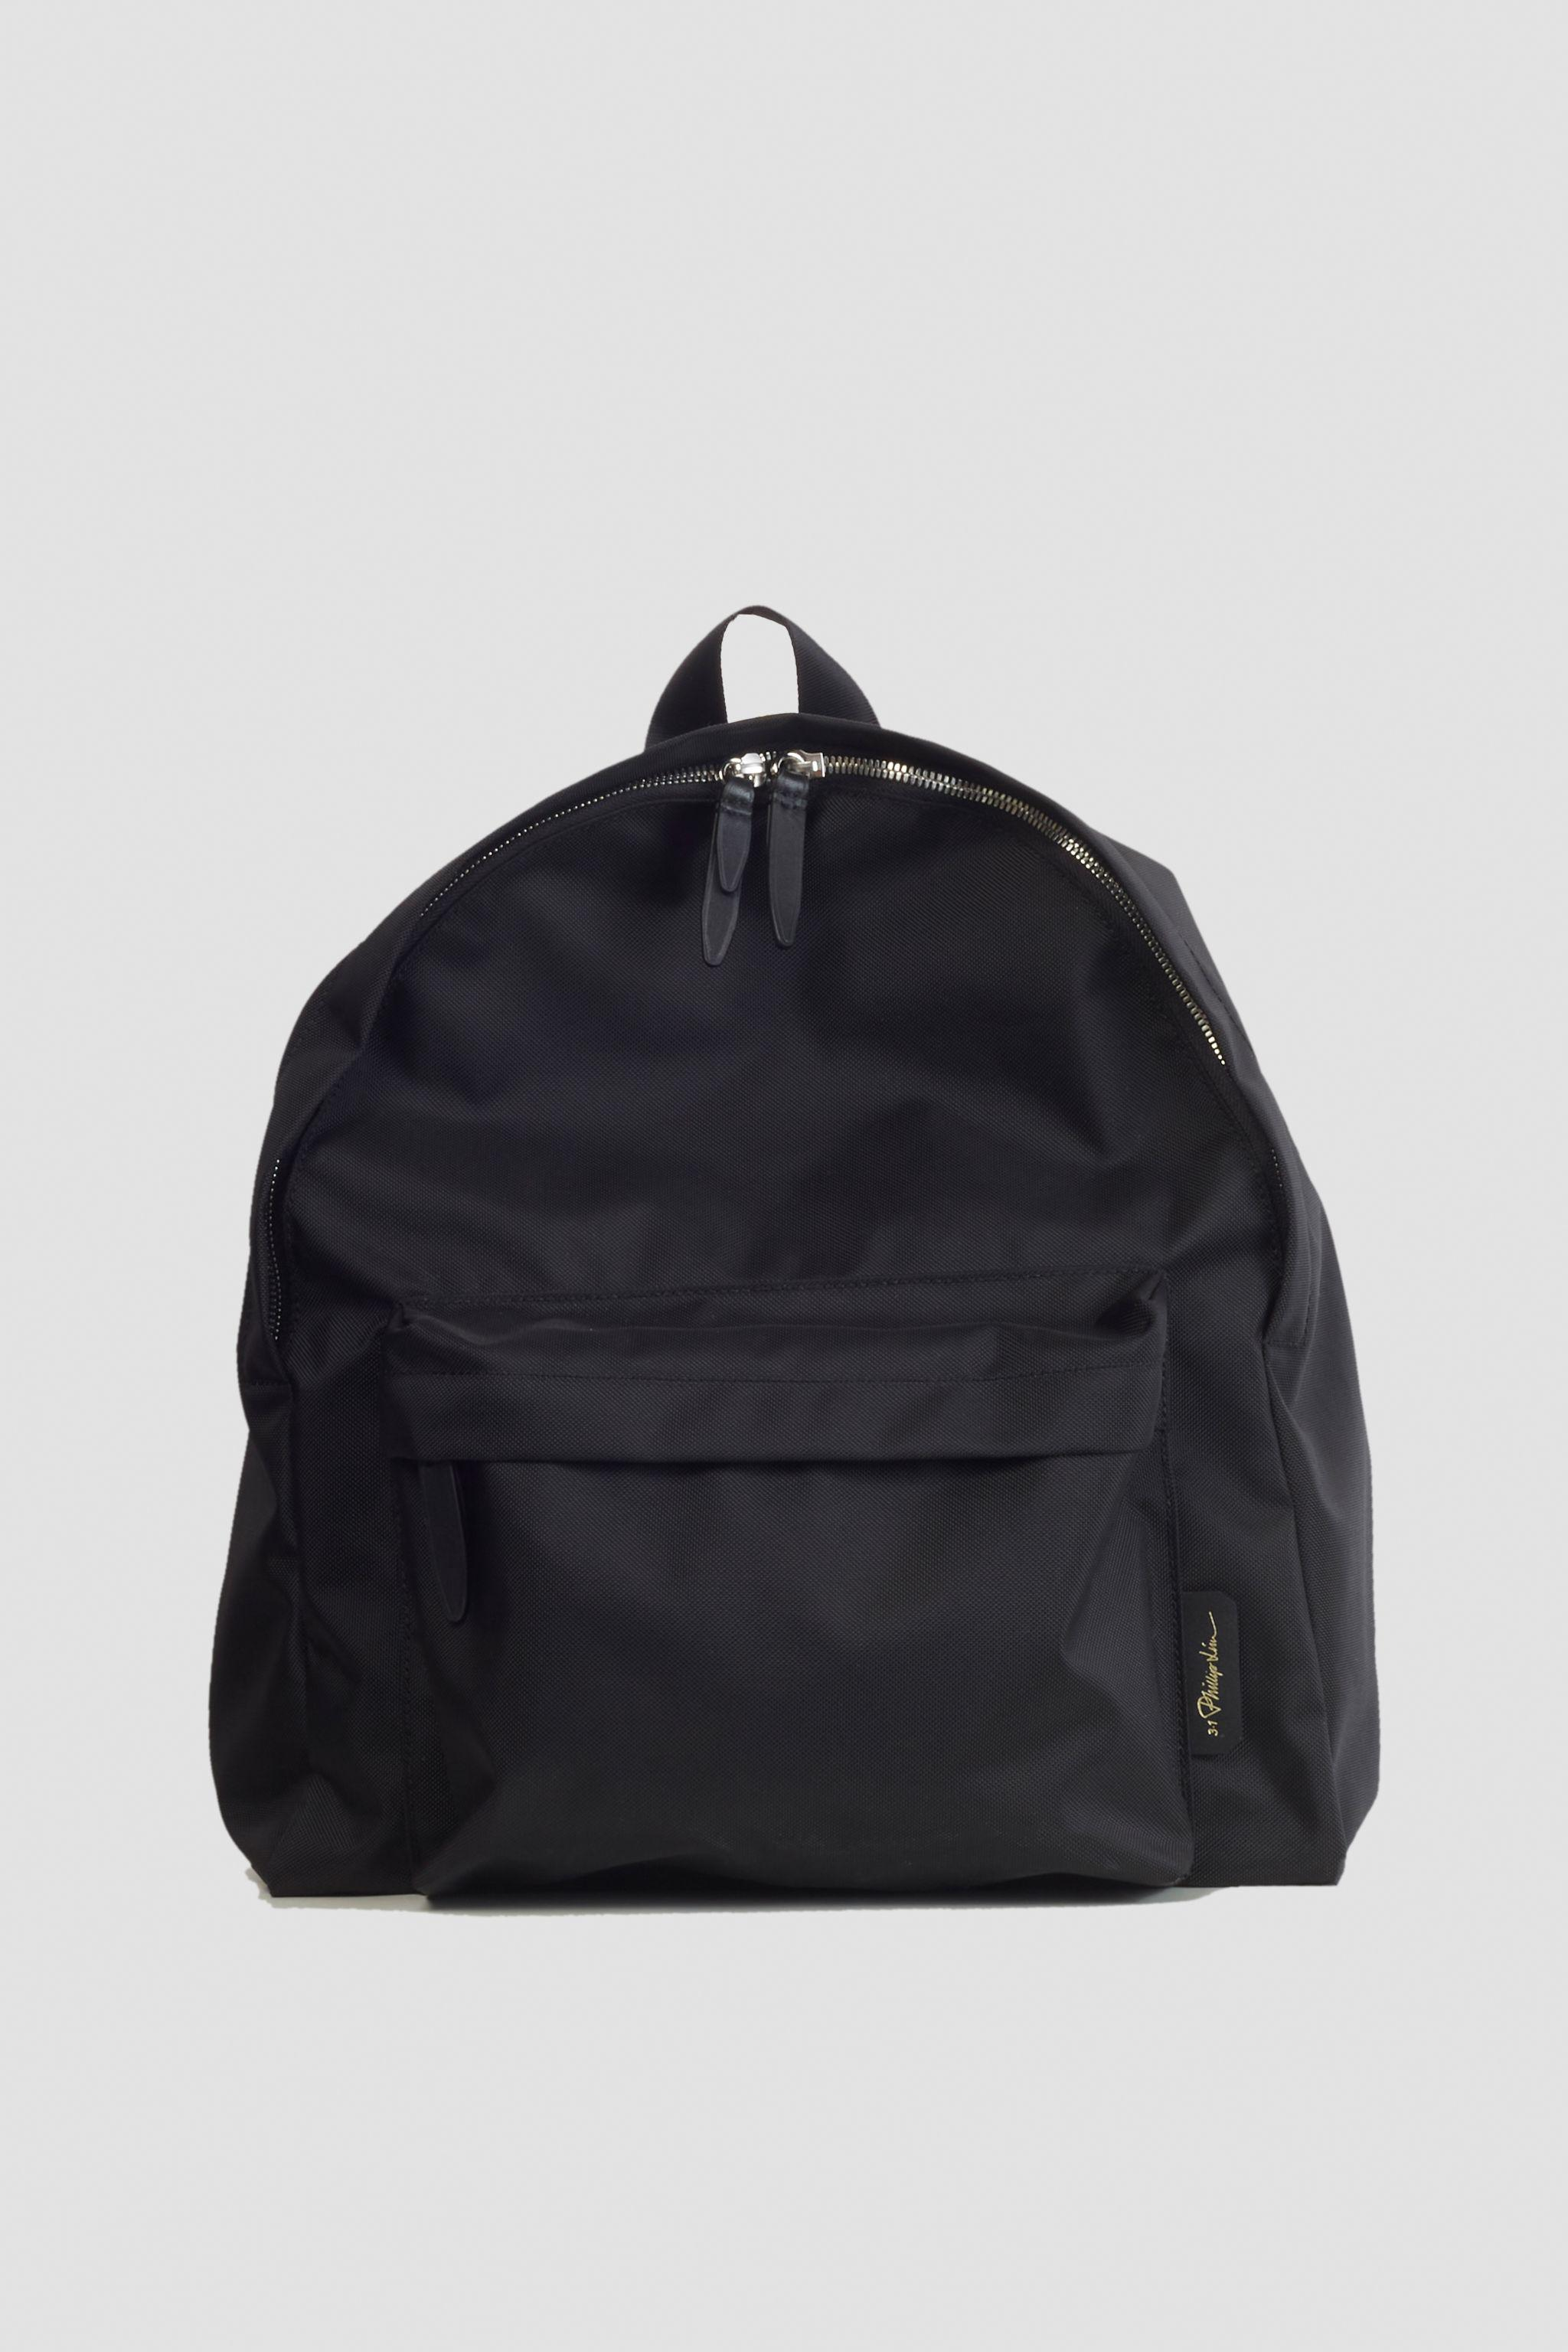 The Deconstructed Backpack